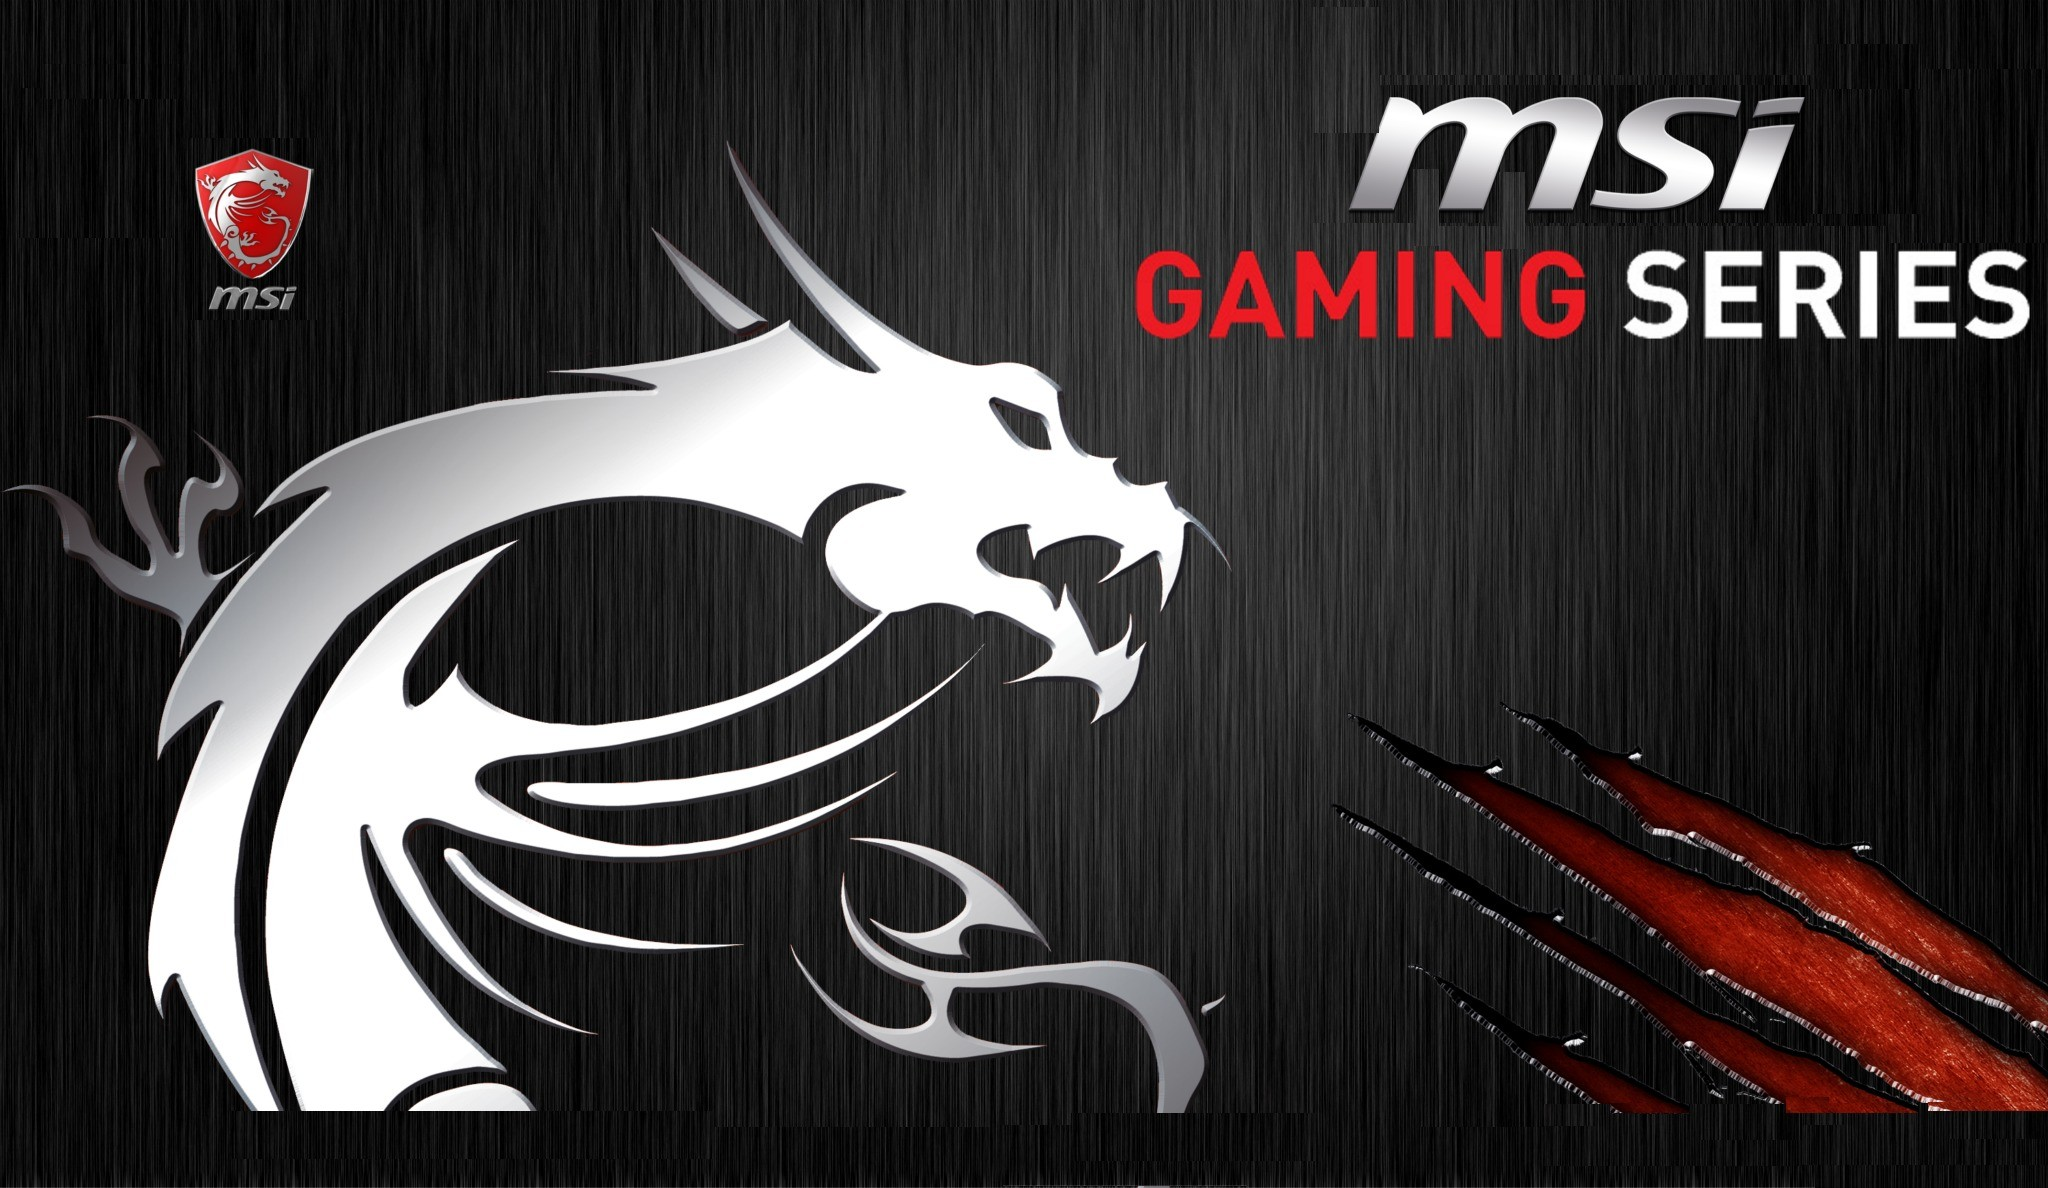 MSI Wallpaper 4K – WallpaperSafari